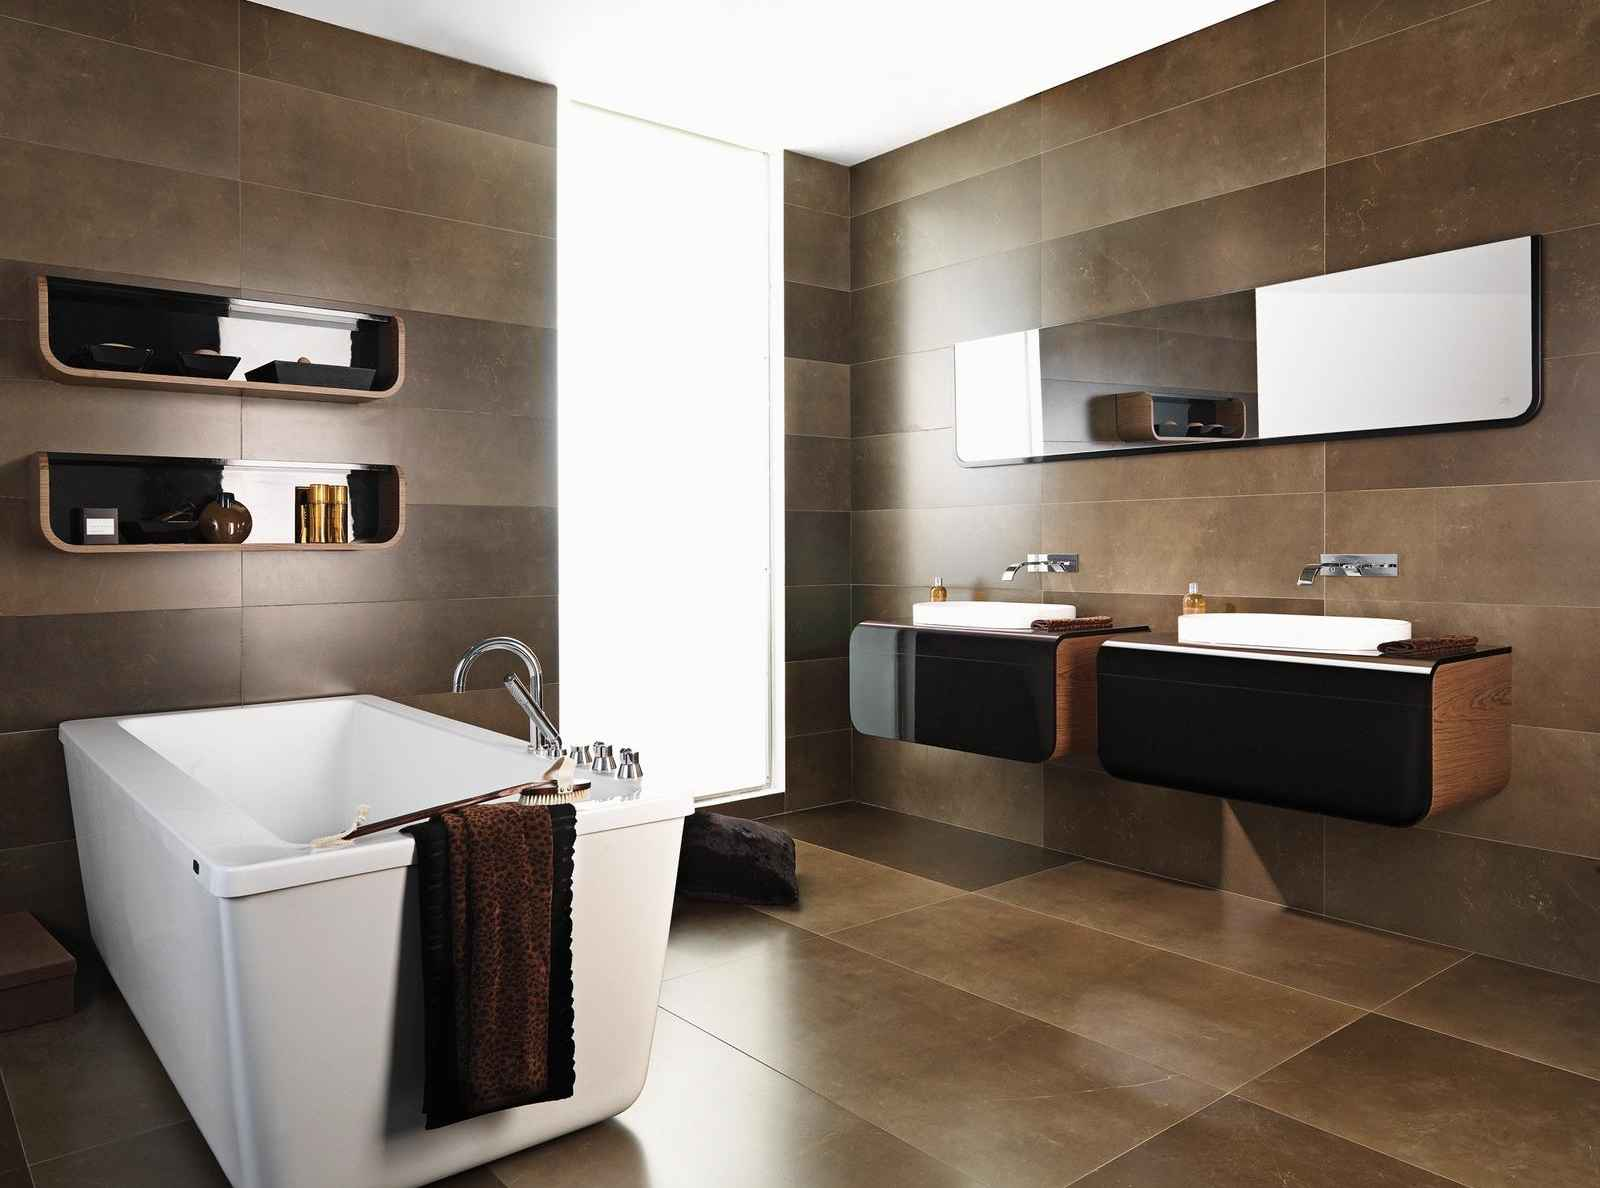 27 wonderful pictures and ideas of italian bathroom wall tiles 20034